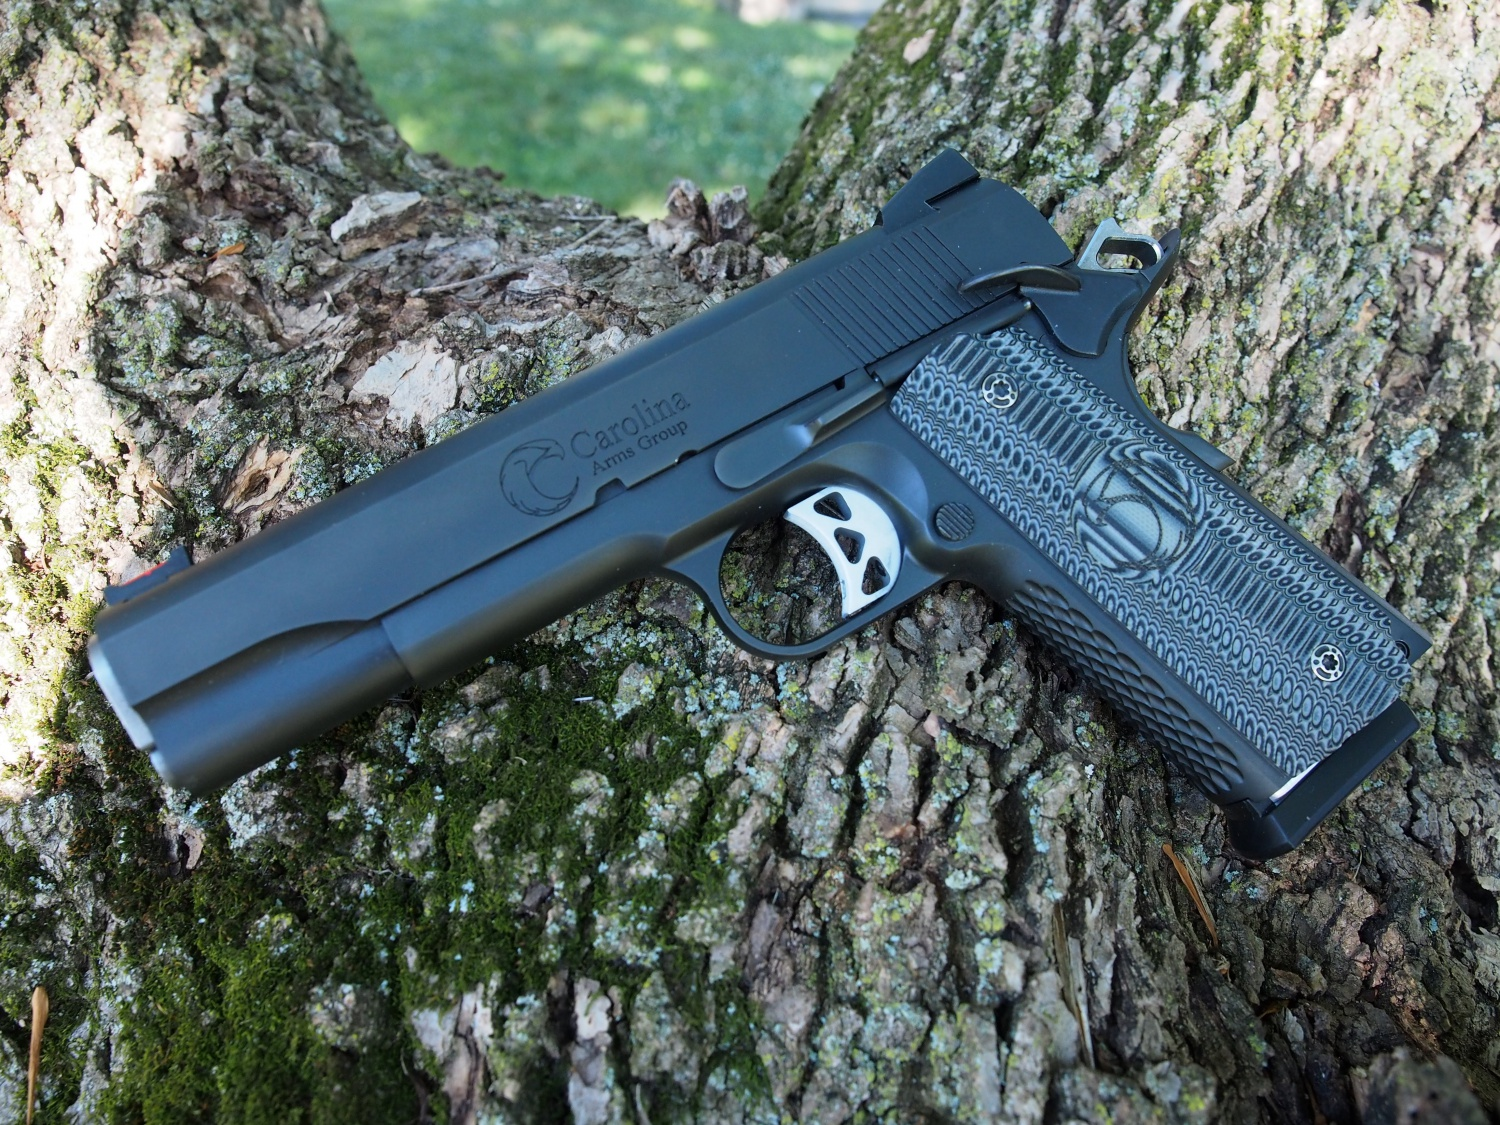 Black Tactical Trenton with PVD coating.